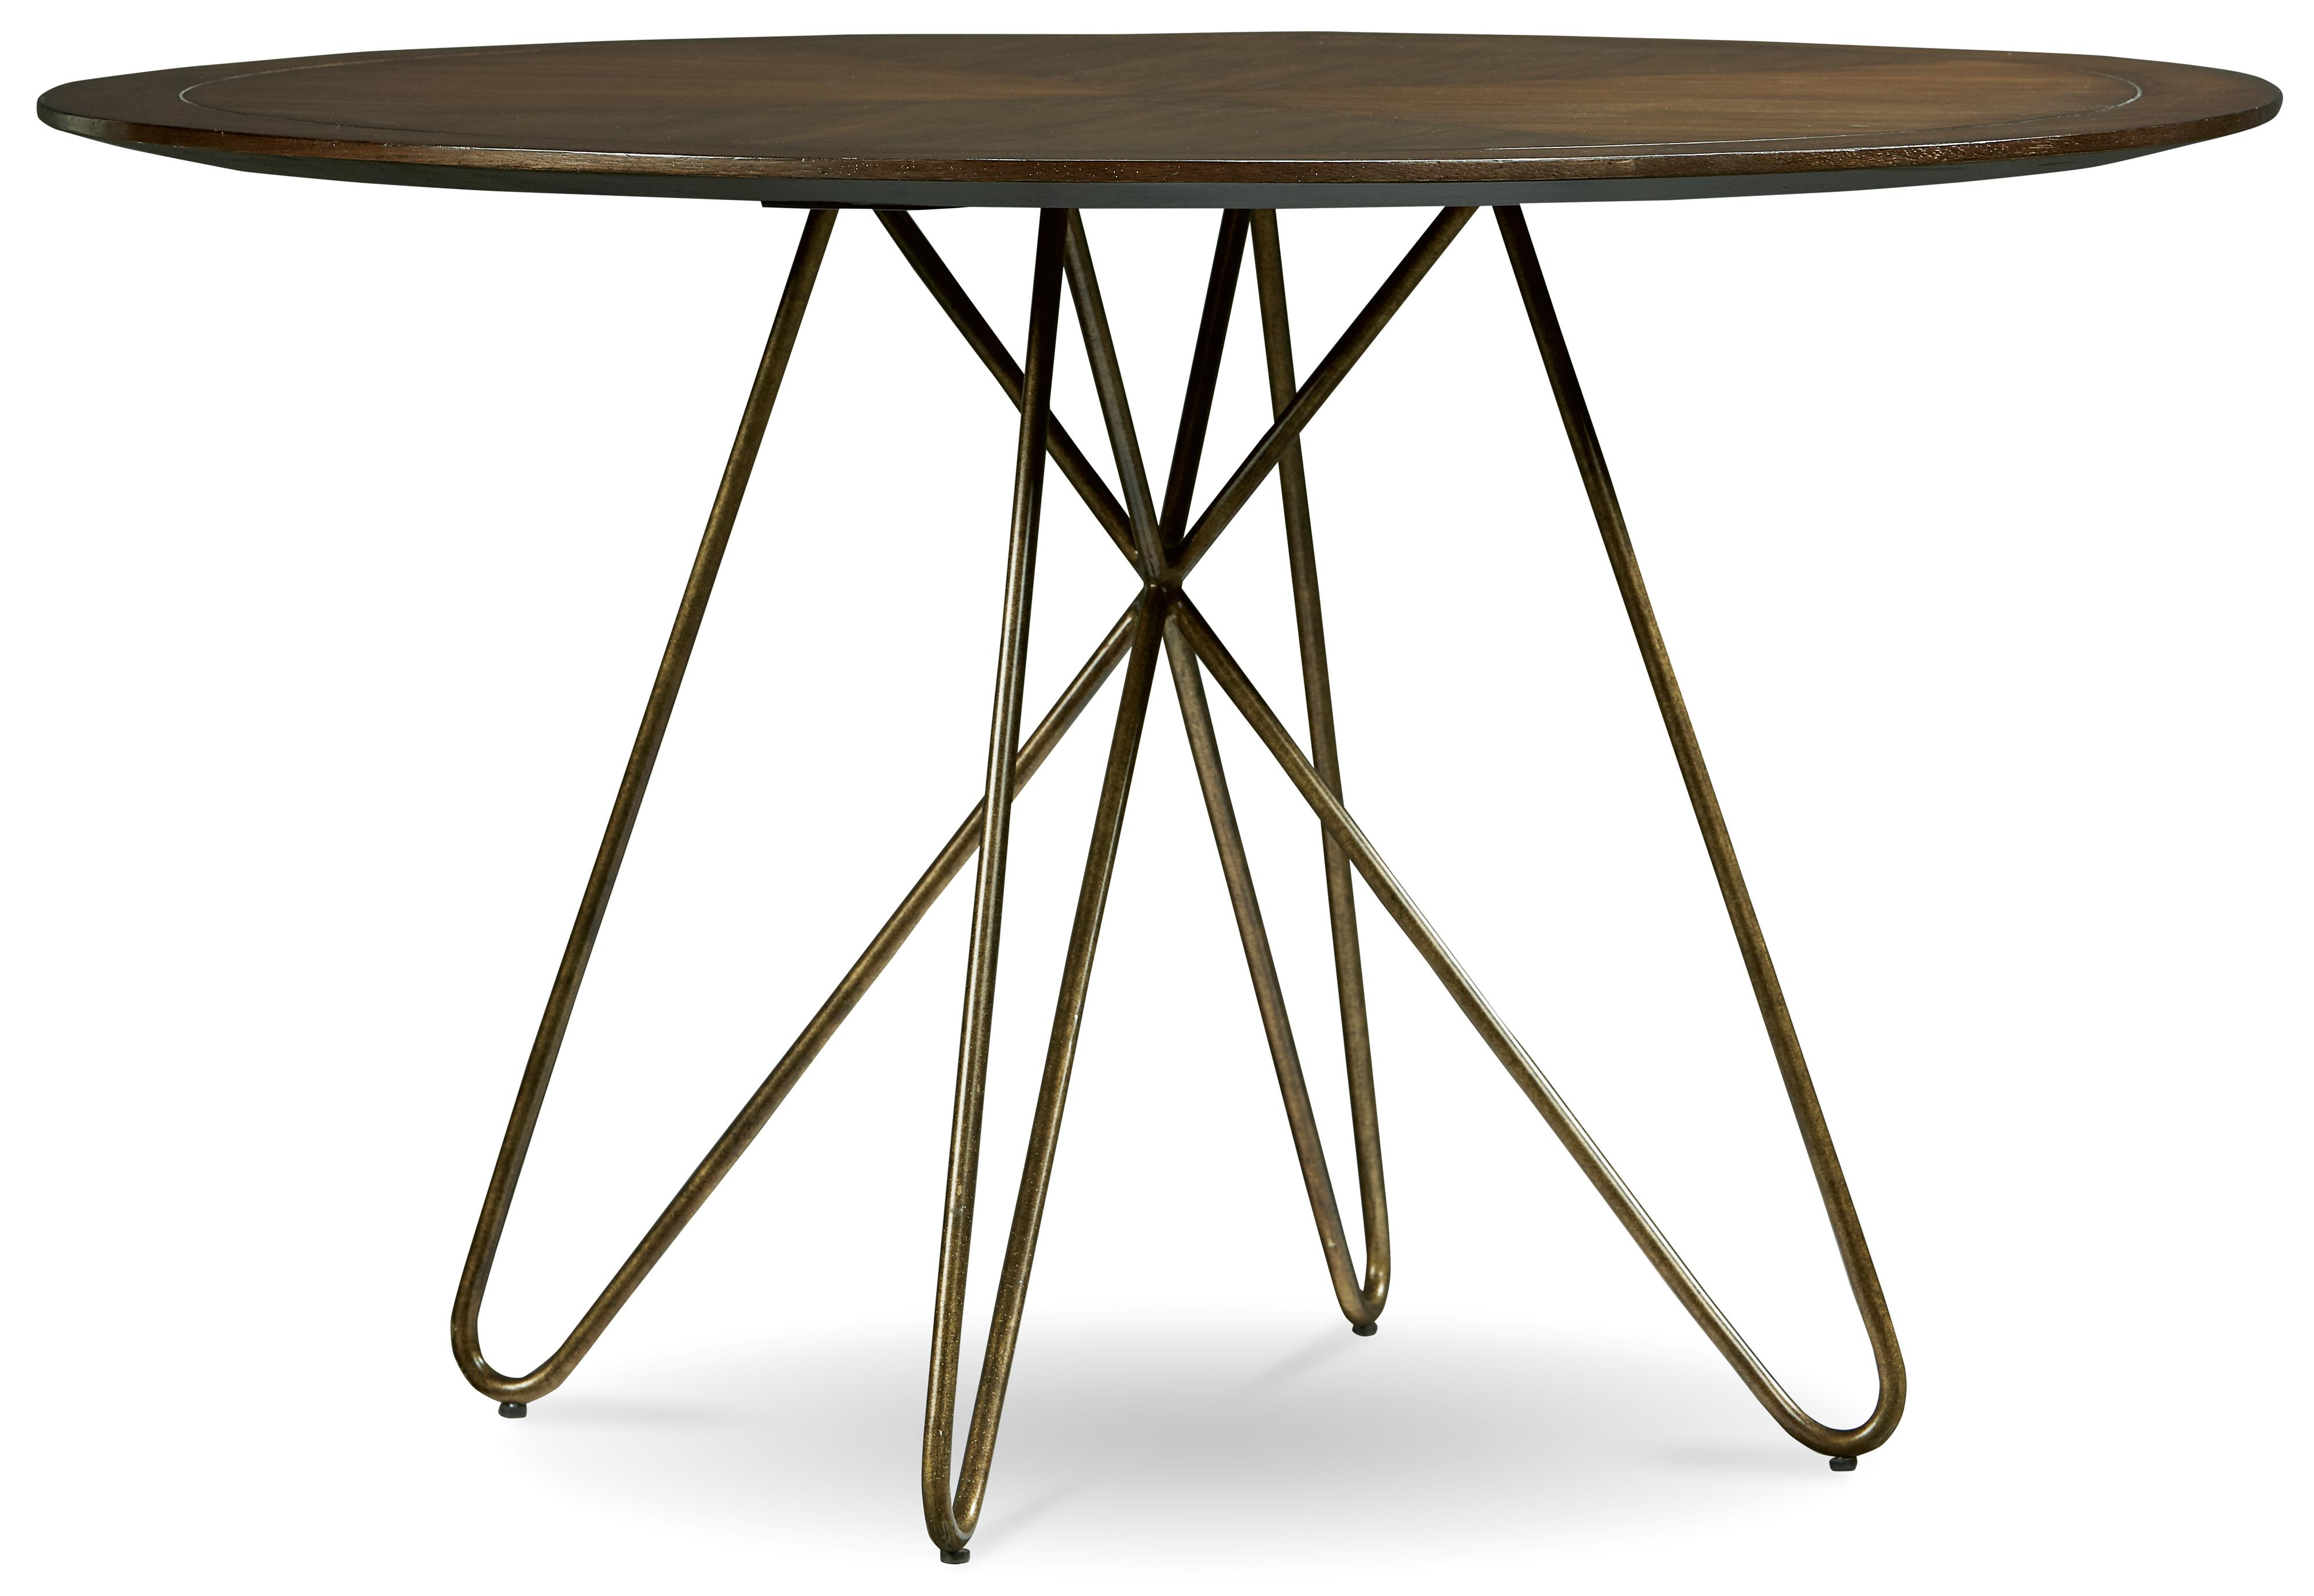 Belfort Signature Urban Treasures 14th and U Round Dining Table - Item Number: 223225-1812